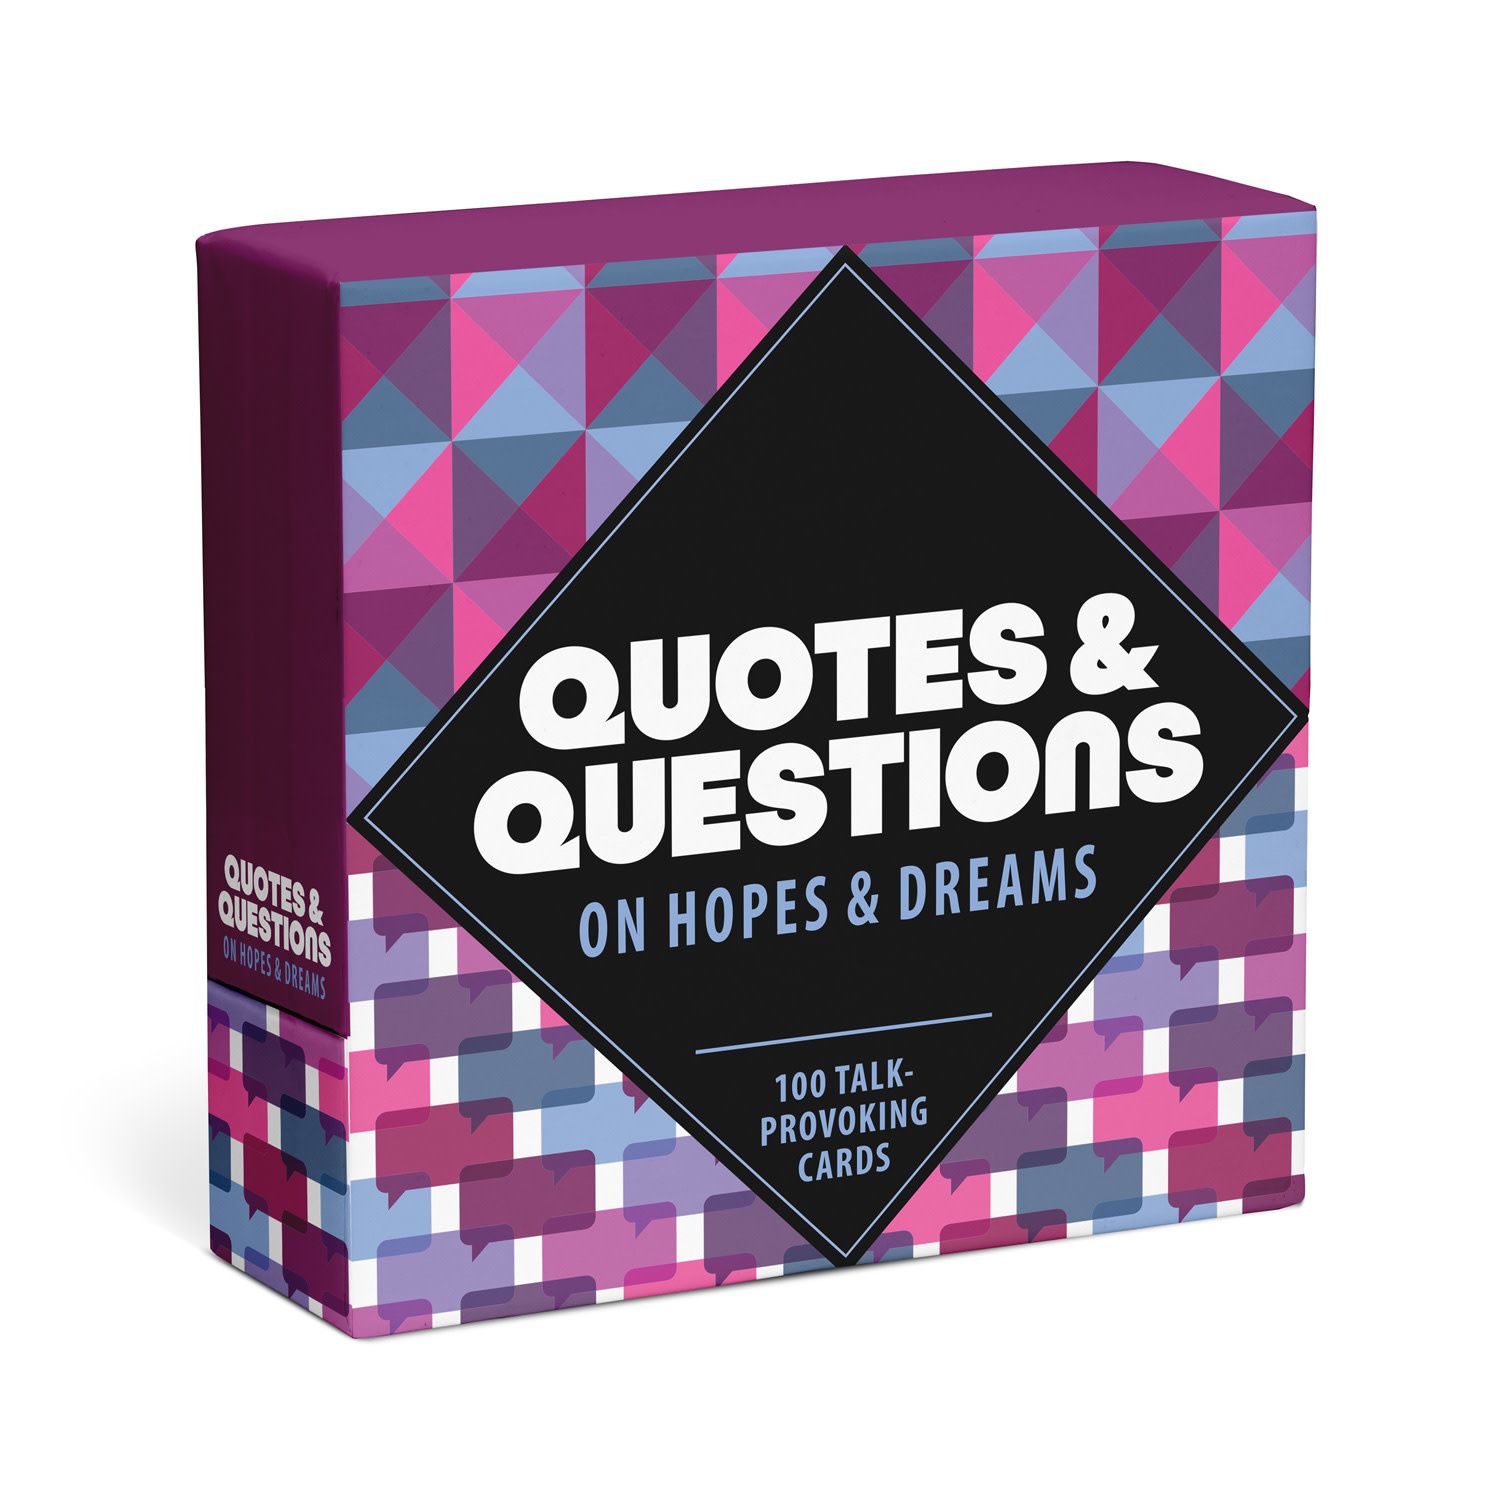 Quotes & Questions on Hopes & Dreams